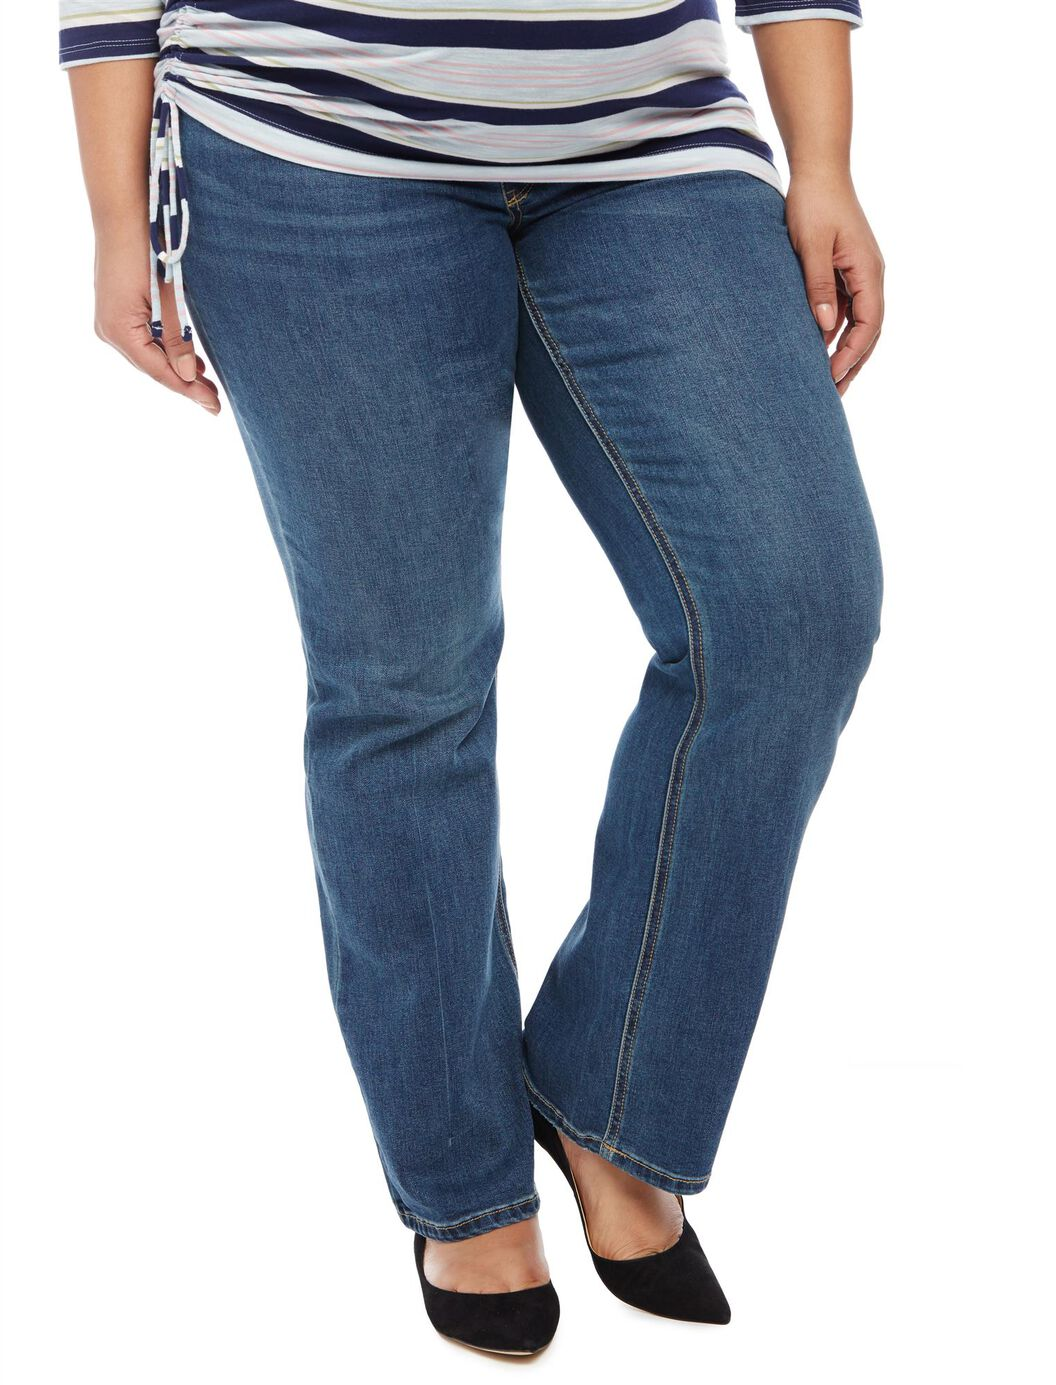 Jessica Simpson Plus Size Secret Fit Belly Boot Cut Maternity Jeans at Motherhood Maternity in Victor, NY | Tuggl